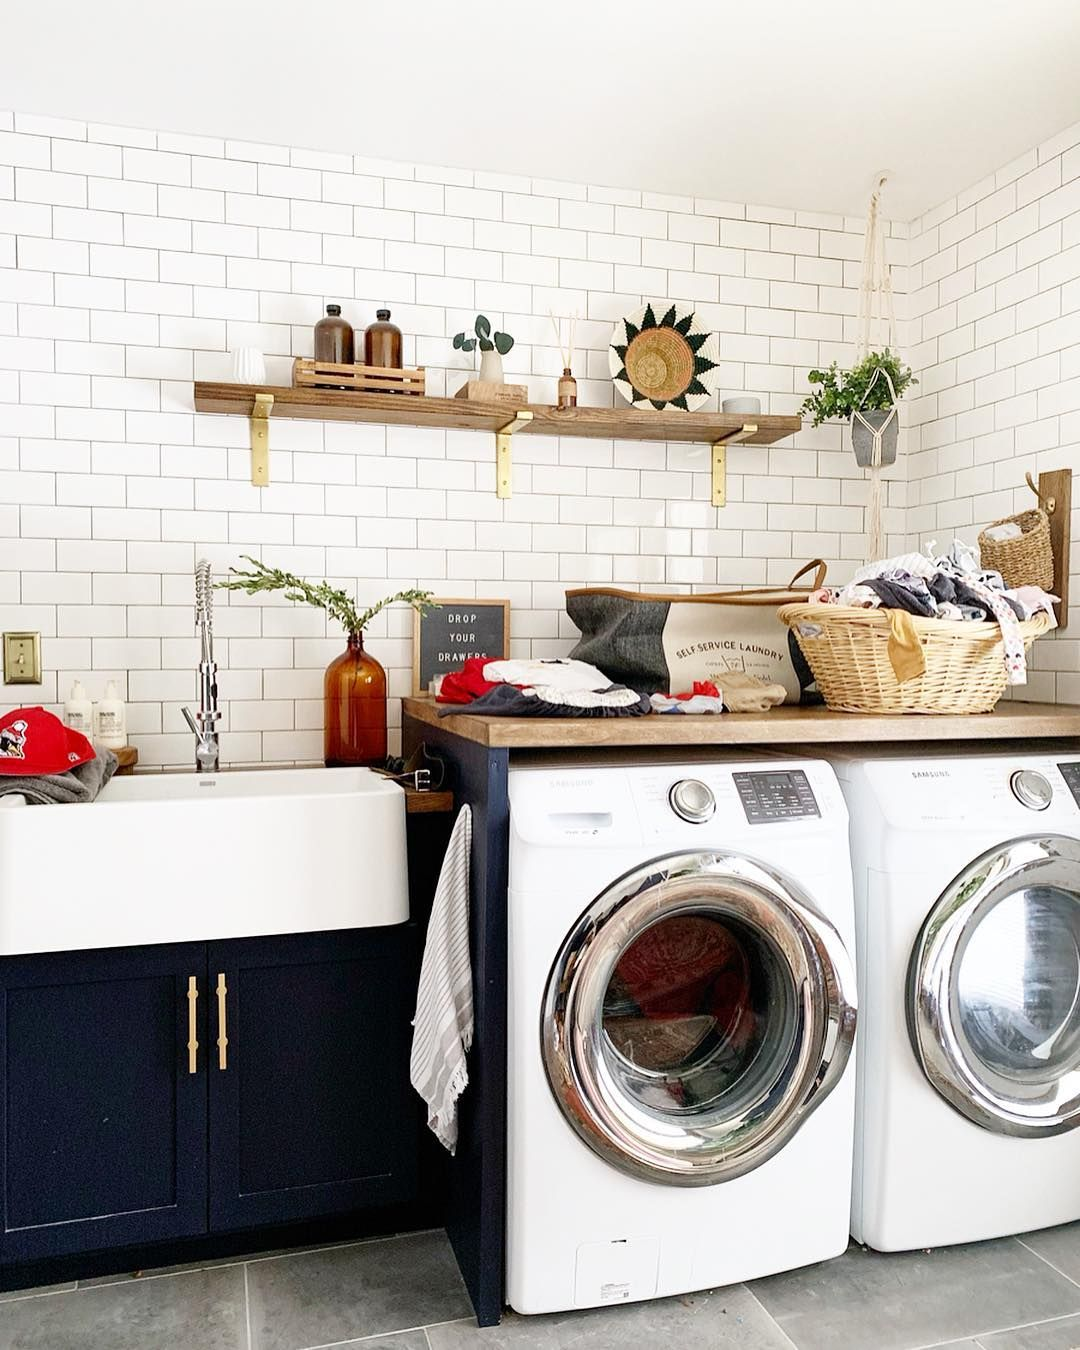 We'd Love To Do Laundry Here @brepurposed! Click The Image